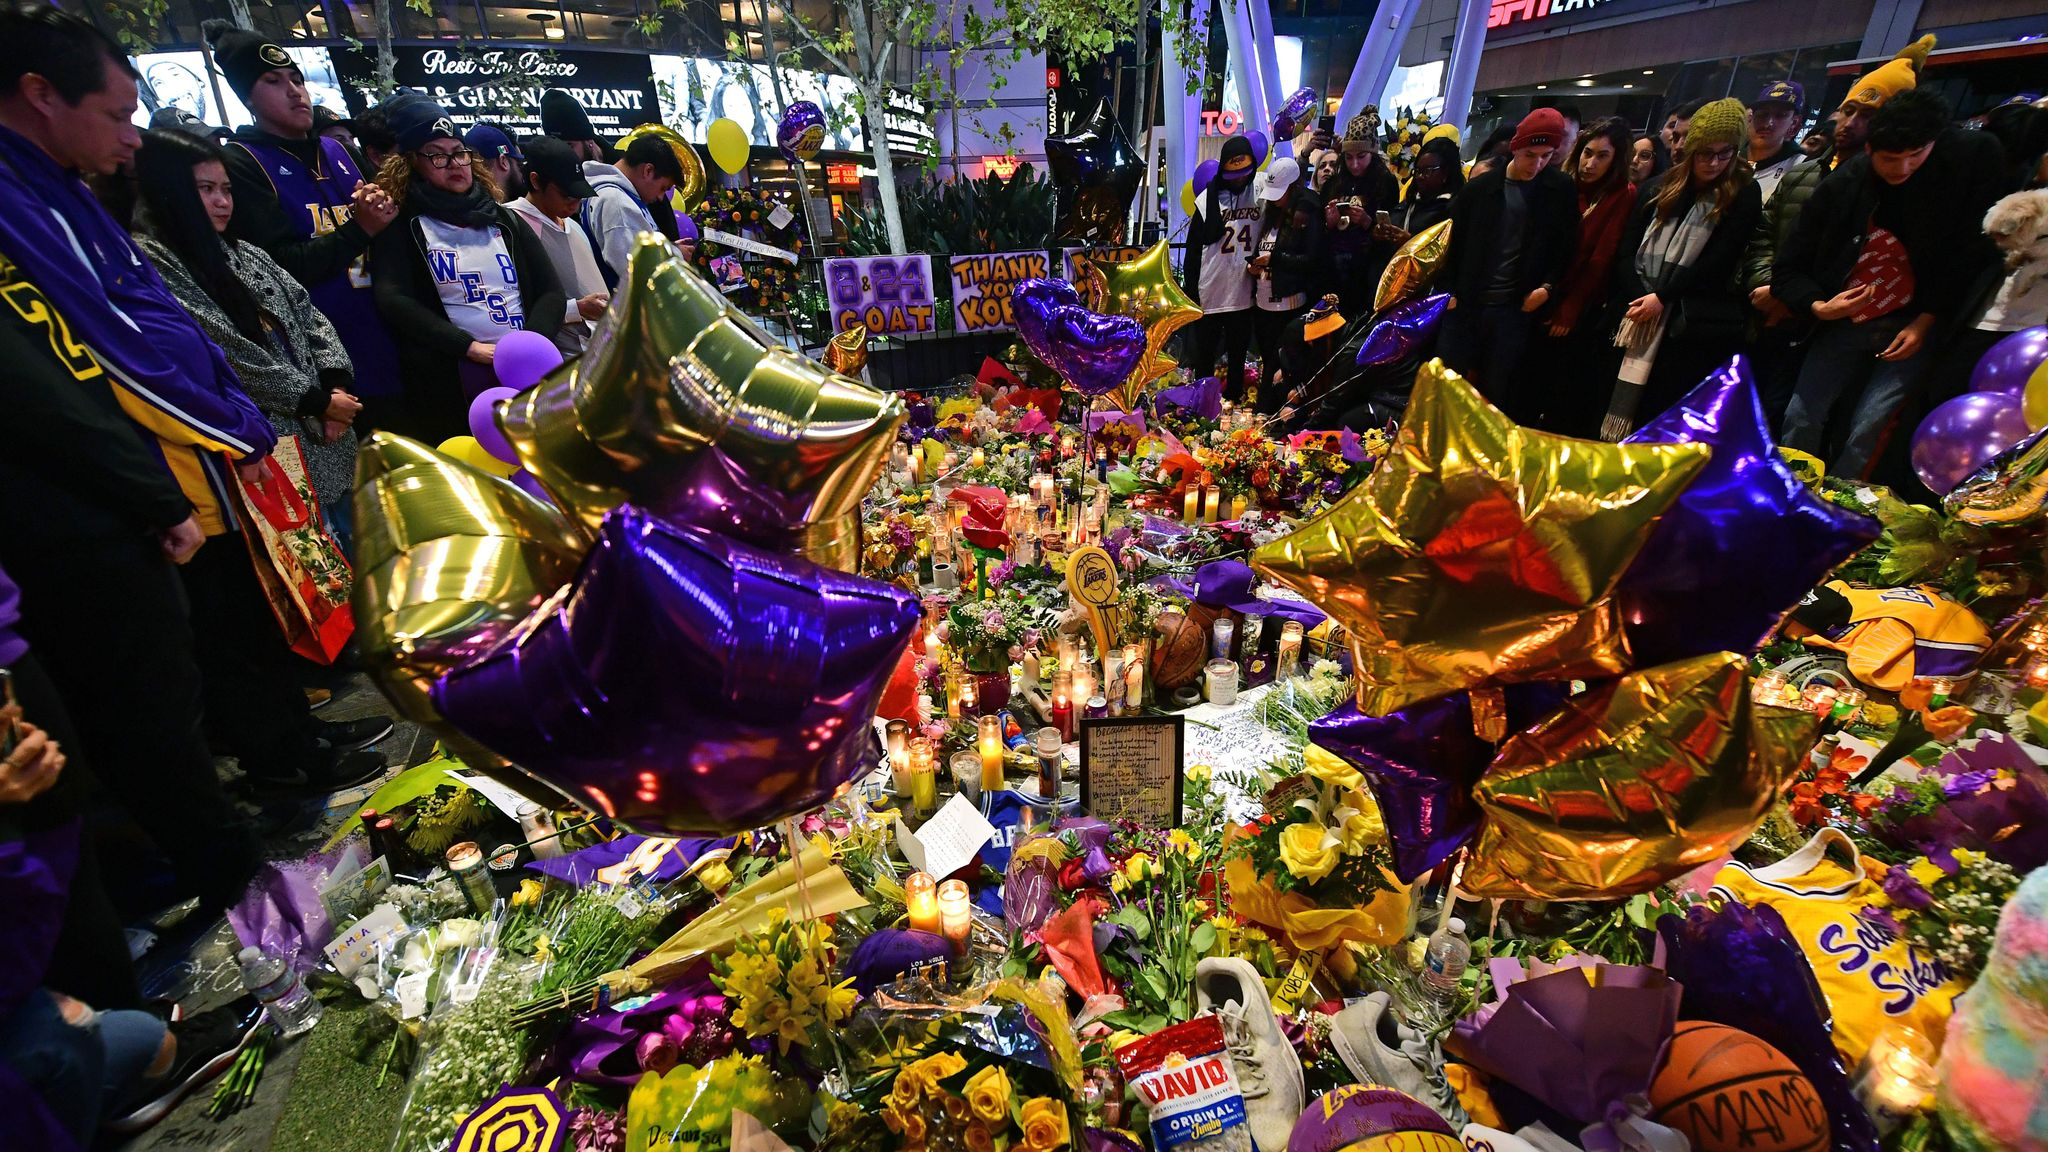 People gather in front of a makeshift memorial for former NBA and Los Angeles Lakers player Kobe Bryant and his daughter Gianna Bryant, who were killed with seven others in a helicopter crash on January 26, at LA Live plaza in front of Staples Center in Los Angeles on January 27, 2020. - Federal investigators sifted through the wreckage of the helicopter crash that killed basketball legend Kobe Bryant and eight other people, hoping to find clues to what caused the accident that stunned the world. (Photo by FREDERIC J. BROWN / AFP) (Photo by FREDERIC J. BROWN/AFP via Getty Images)